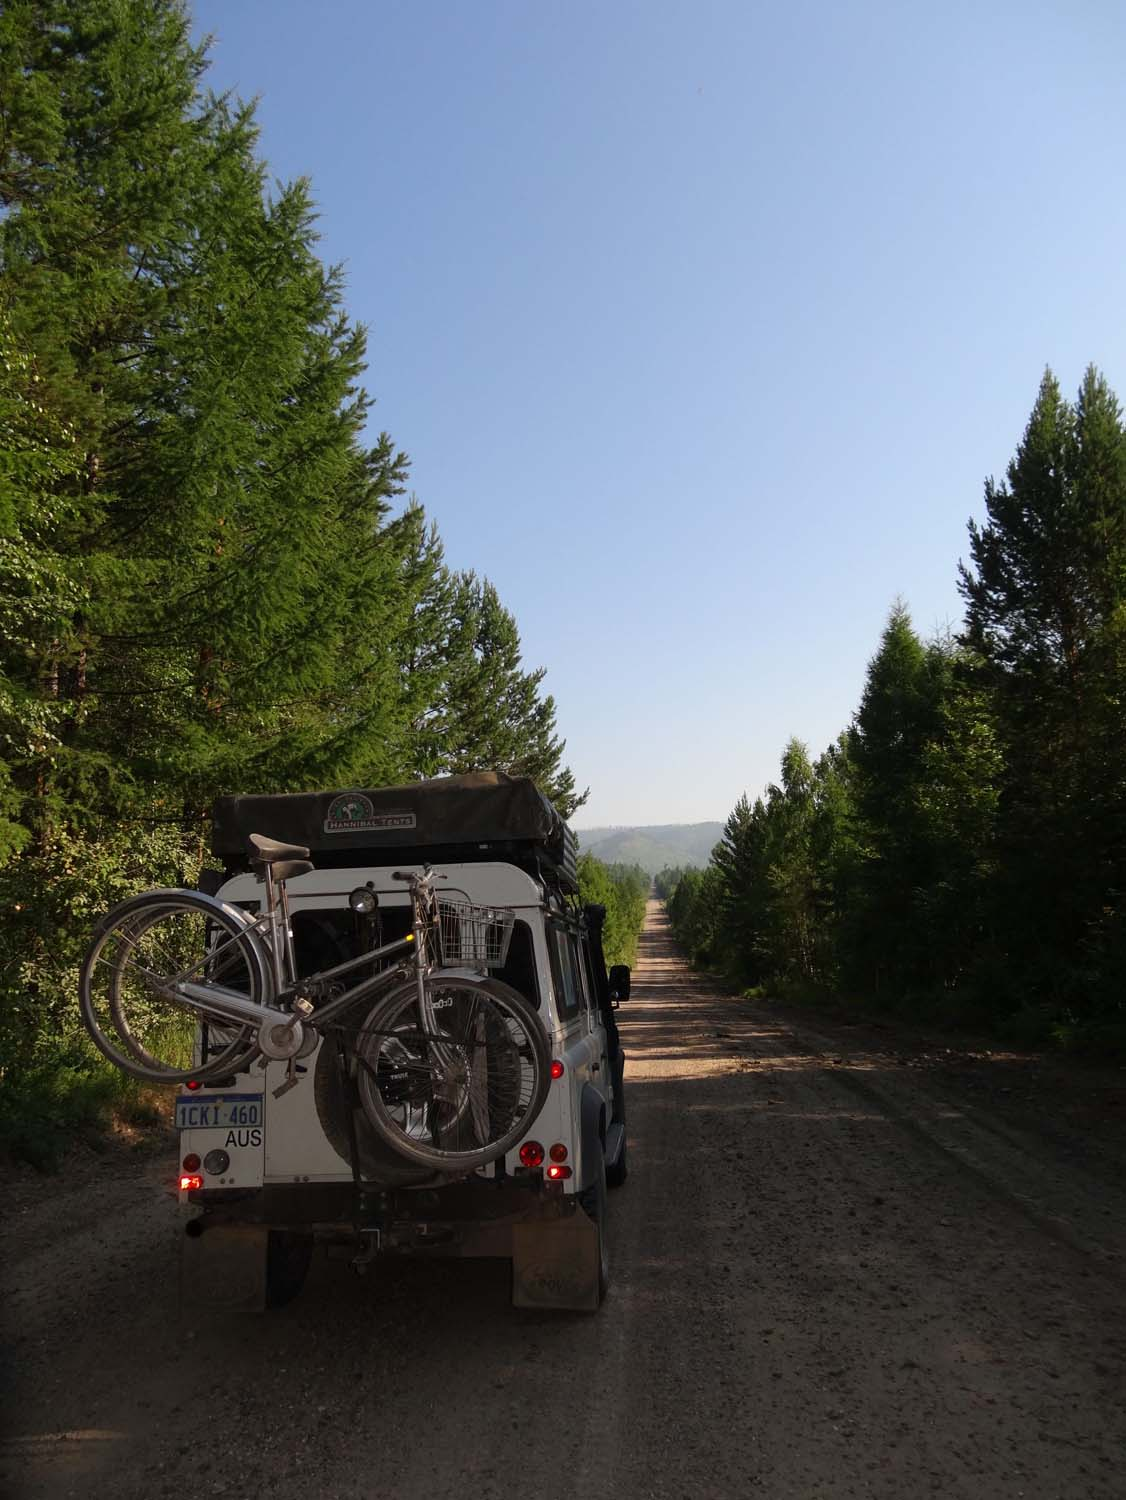 weird driving in pine forests after the emptiness of Mongolia